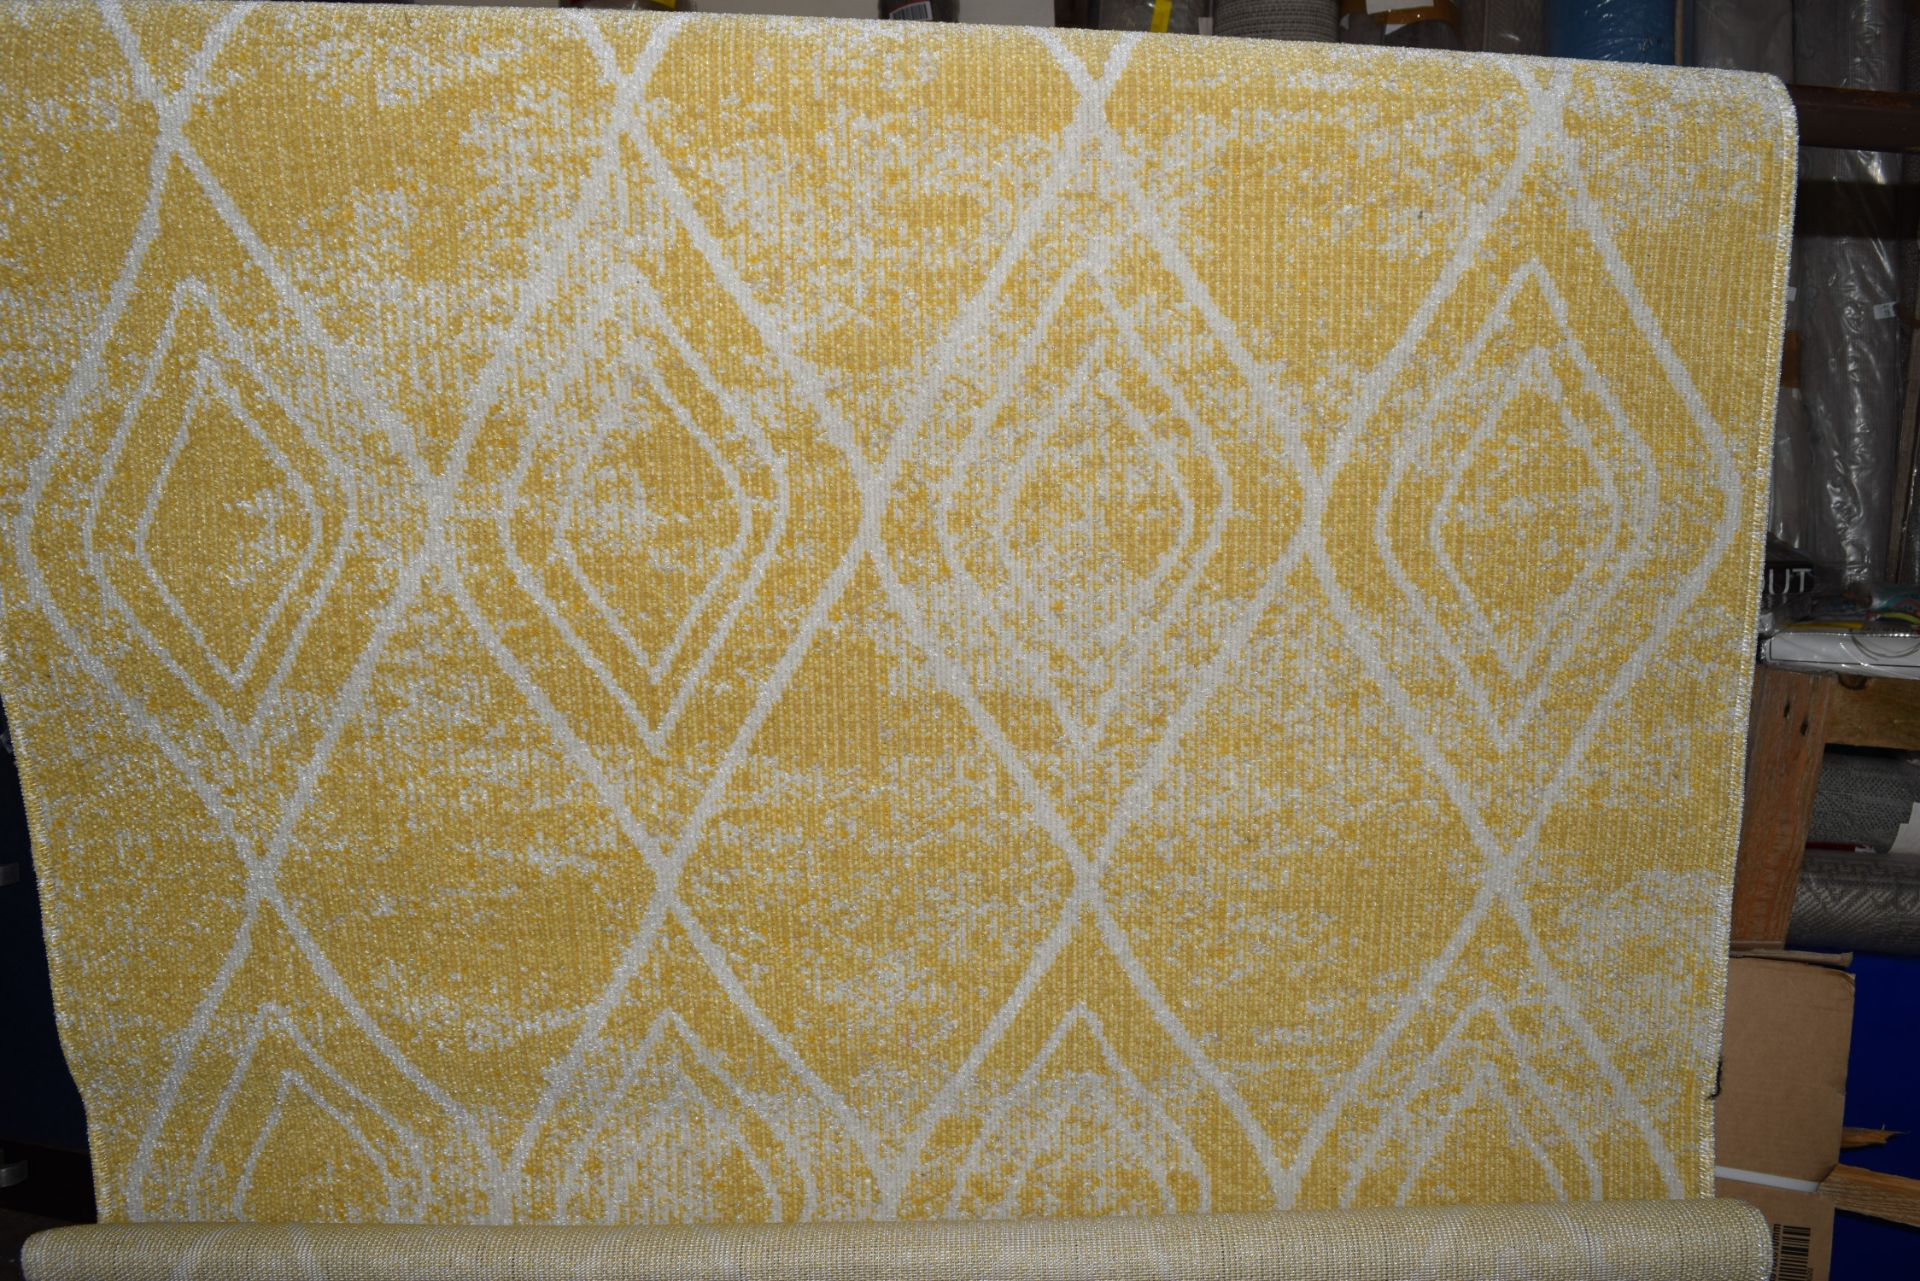 World Menagerie Margaret flat weave yellow/outdoor rug, RRP £54.99 - Image 3 of 3